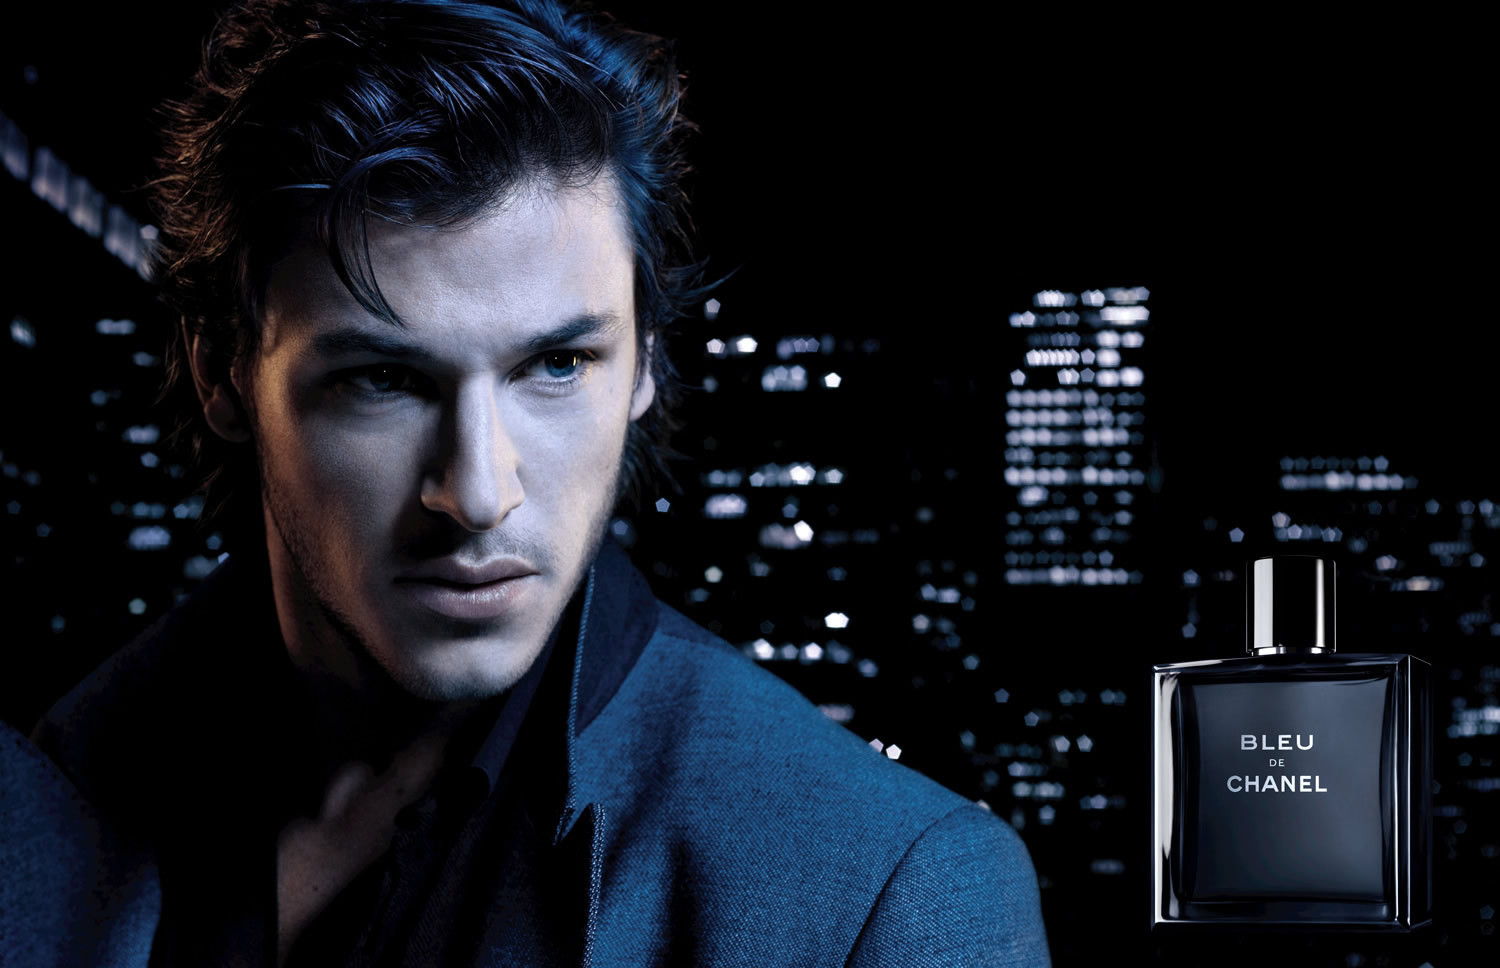 Gaspard Ulliel images Blue The Chanel HD wallpaper and ...